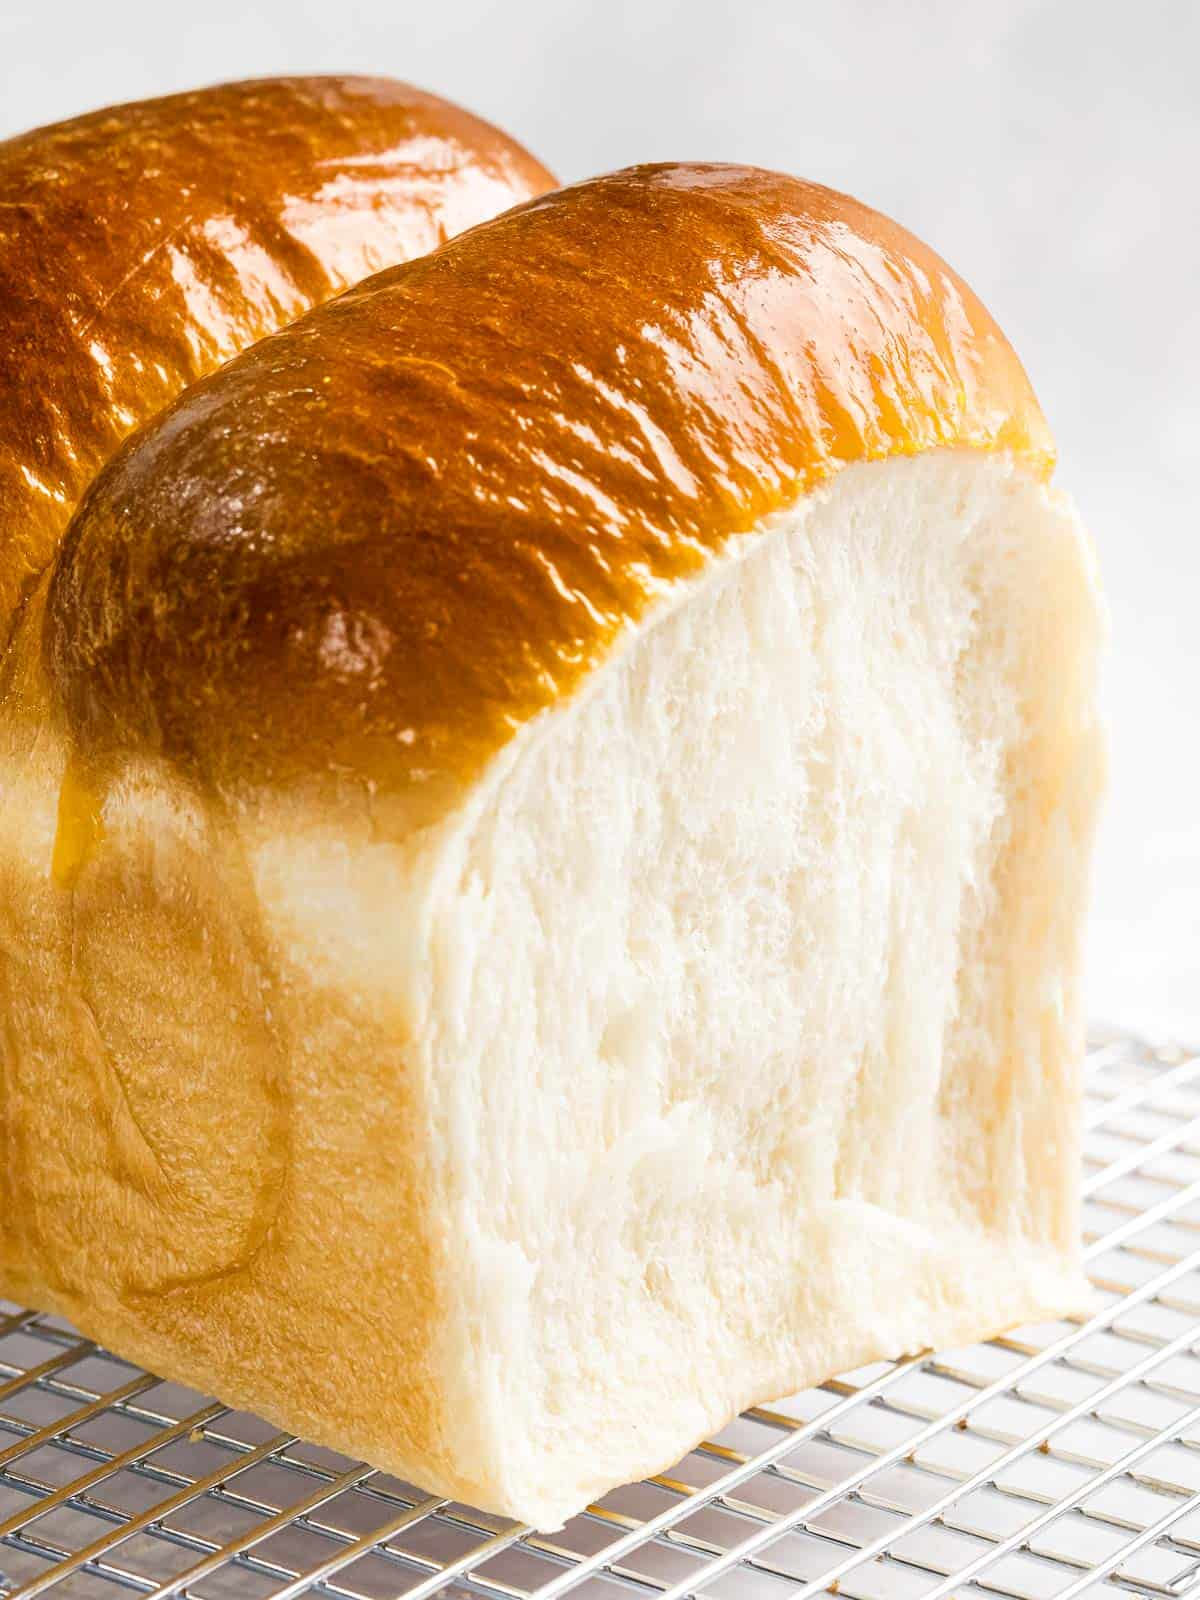 Japanese milk bread or shokupan with soft, fluffy crumb and golden brown crust.